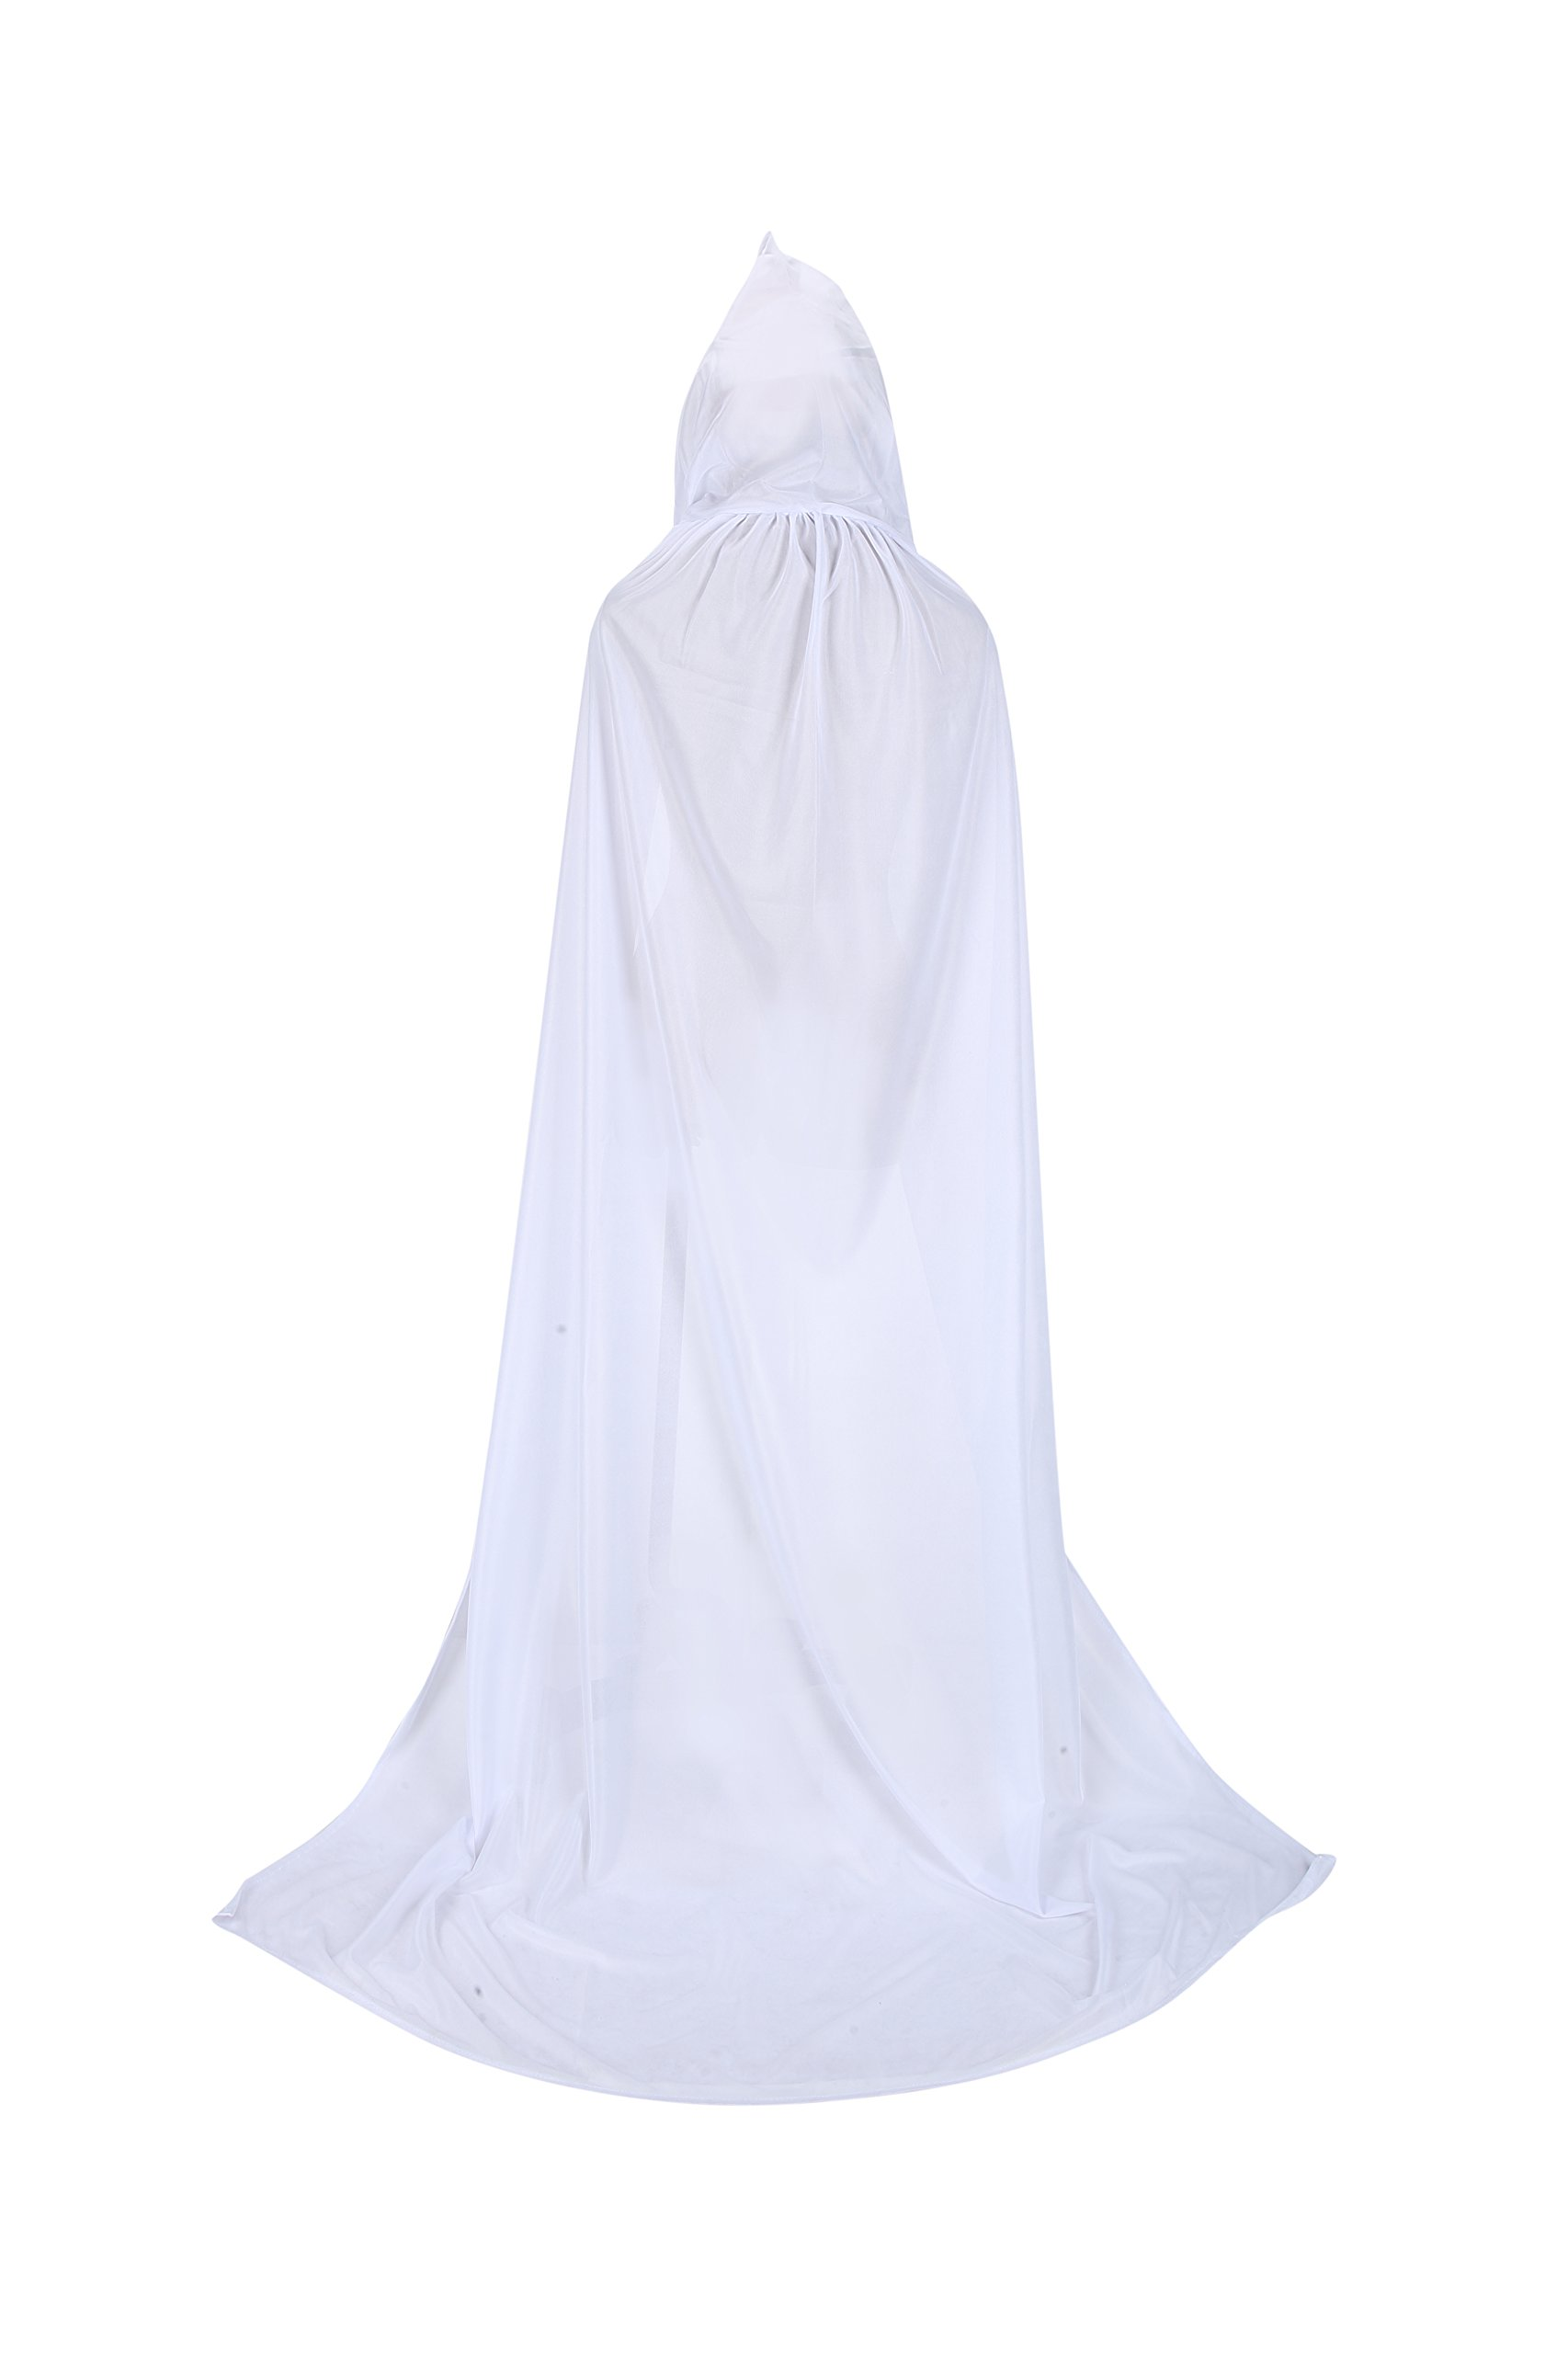 TULIPTREND Full Length Hooded Cloak Christmas Halloween Cosplay Costume Wedding Cape, Medium, White